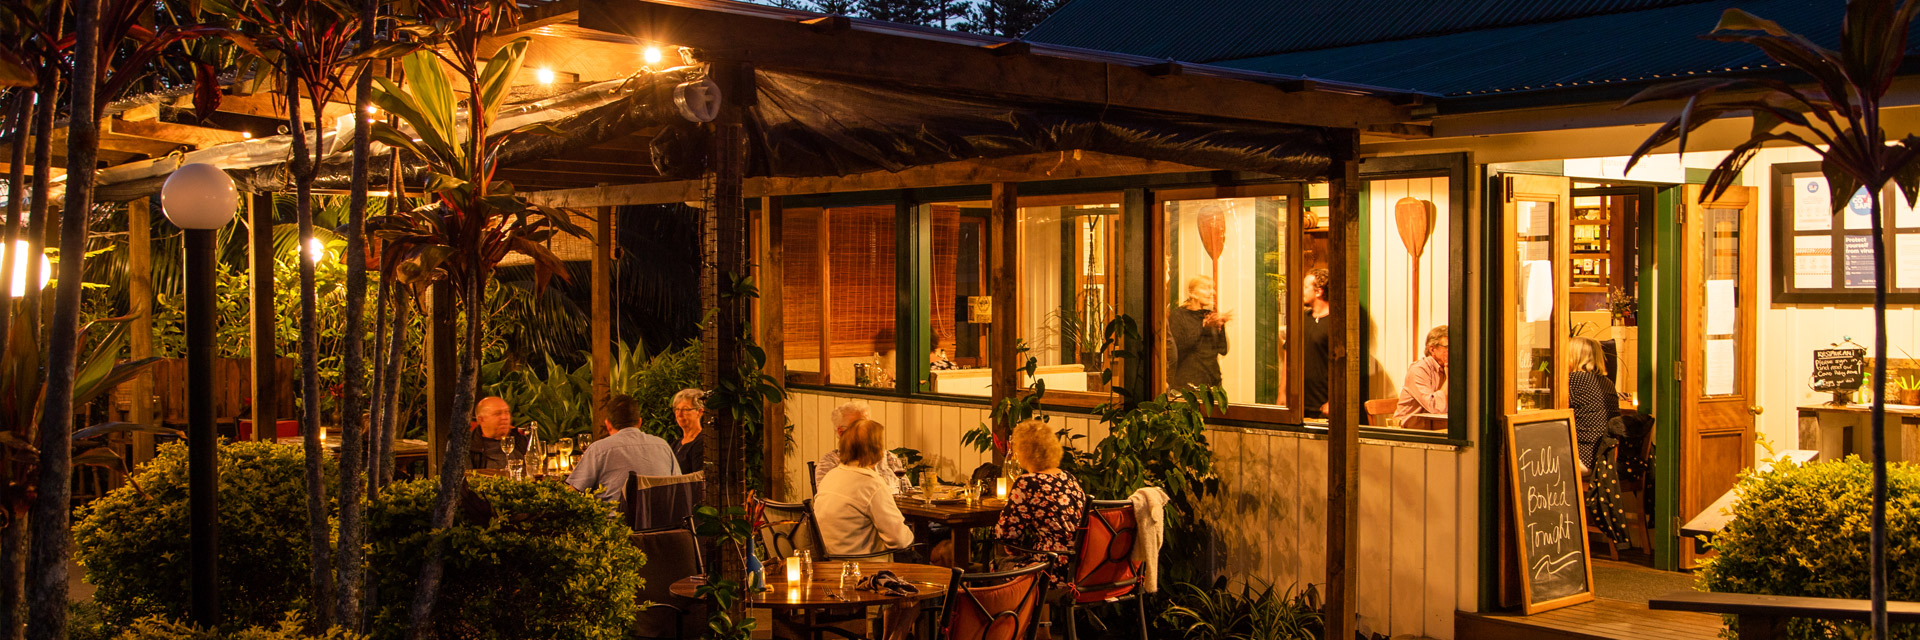 A relaxed evening alfresco dining scene set among a tropical garden. There are several diners both in and outside the re